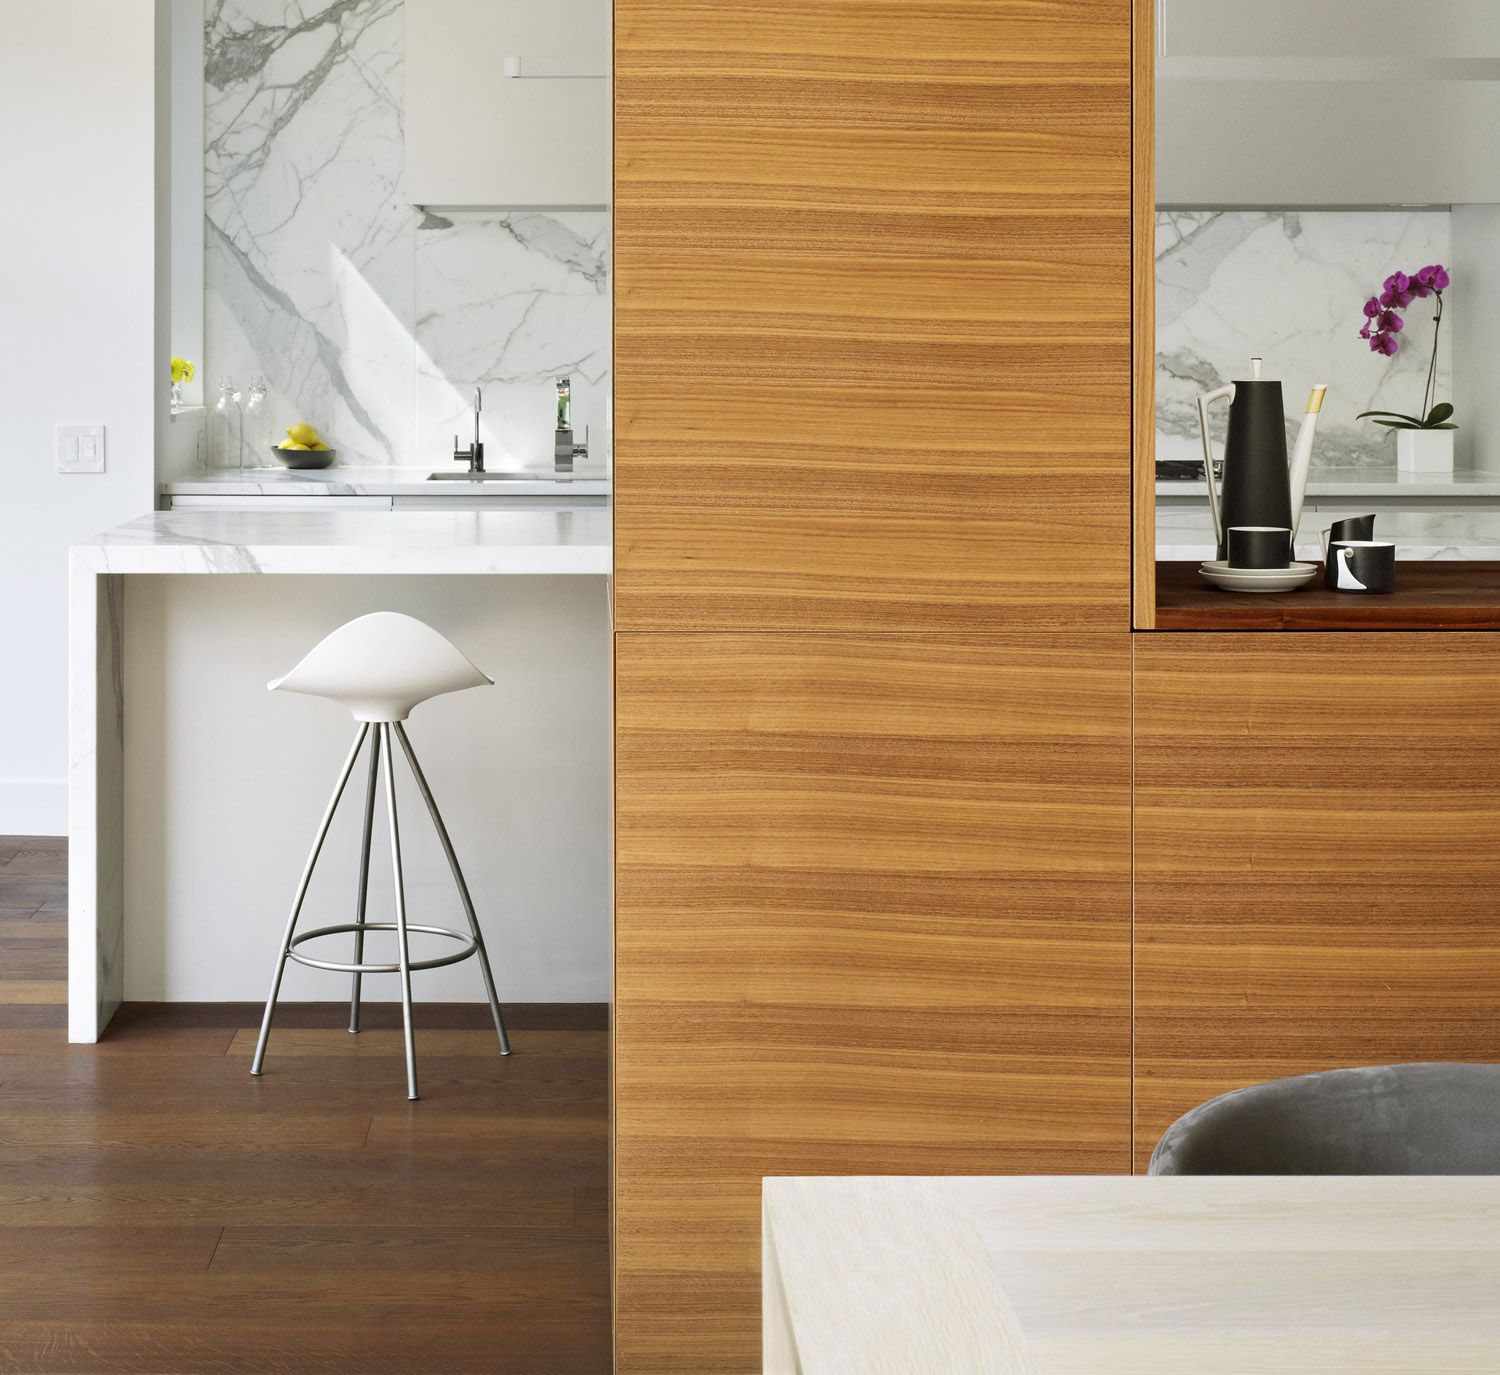 We Love To Discover Stua Onda Stools In This Classy